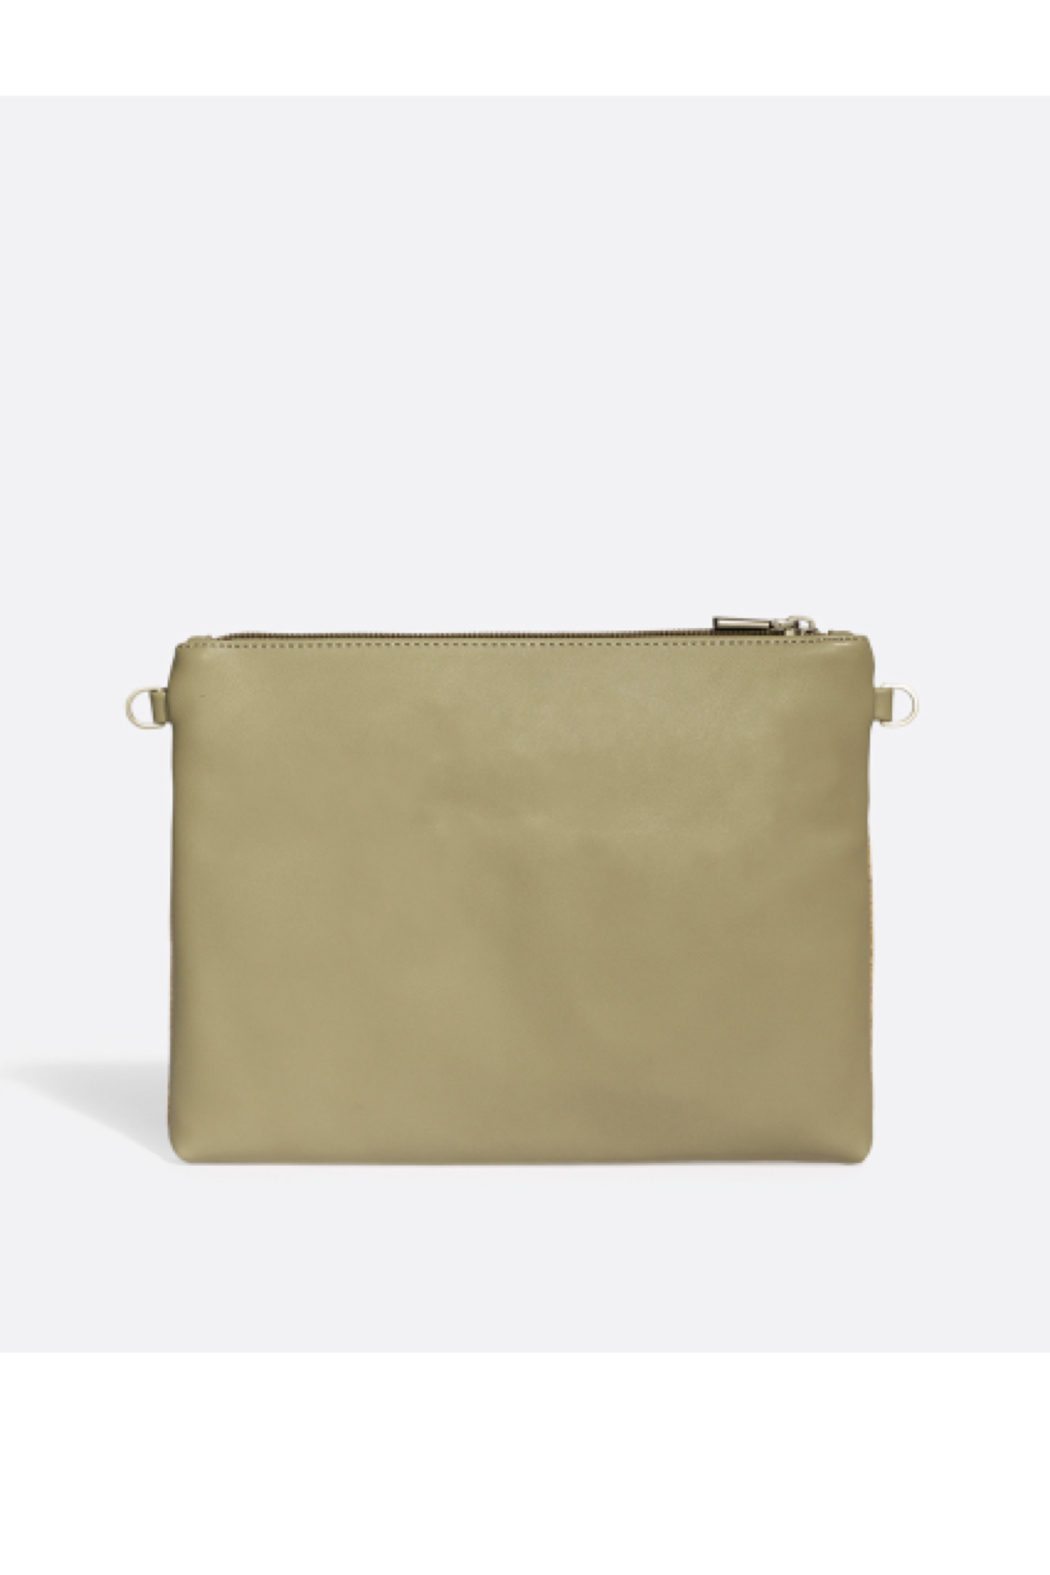 Pixie Mood Nicole Pouch Large – Sage / Cork - Front Full Image